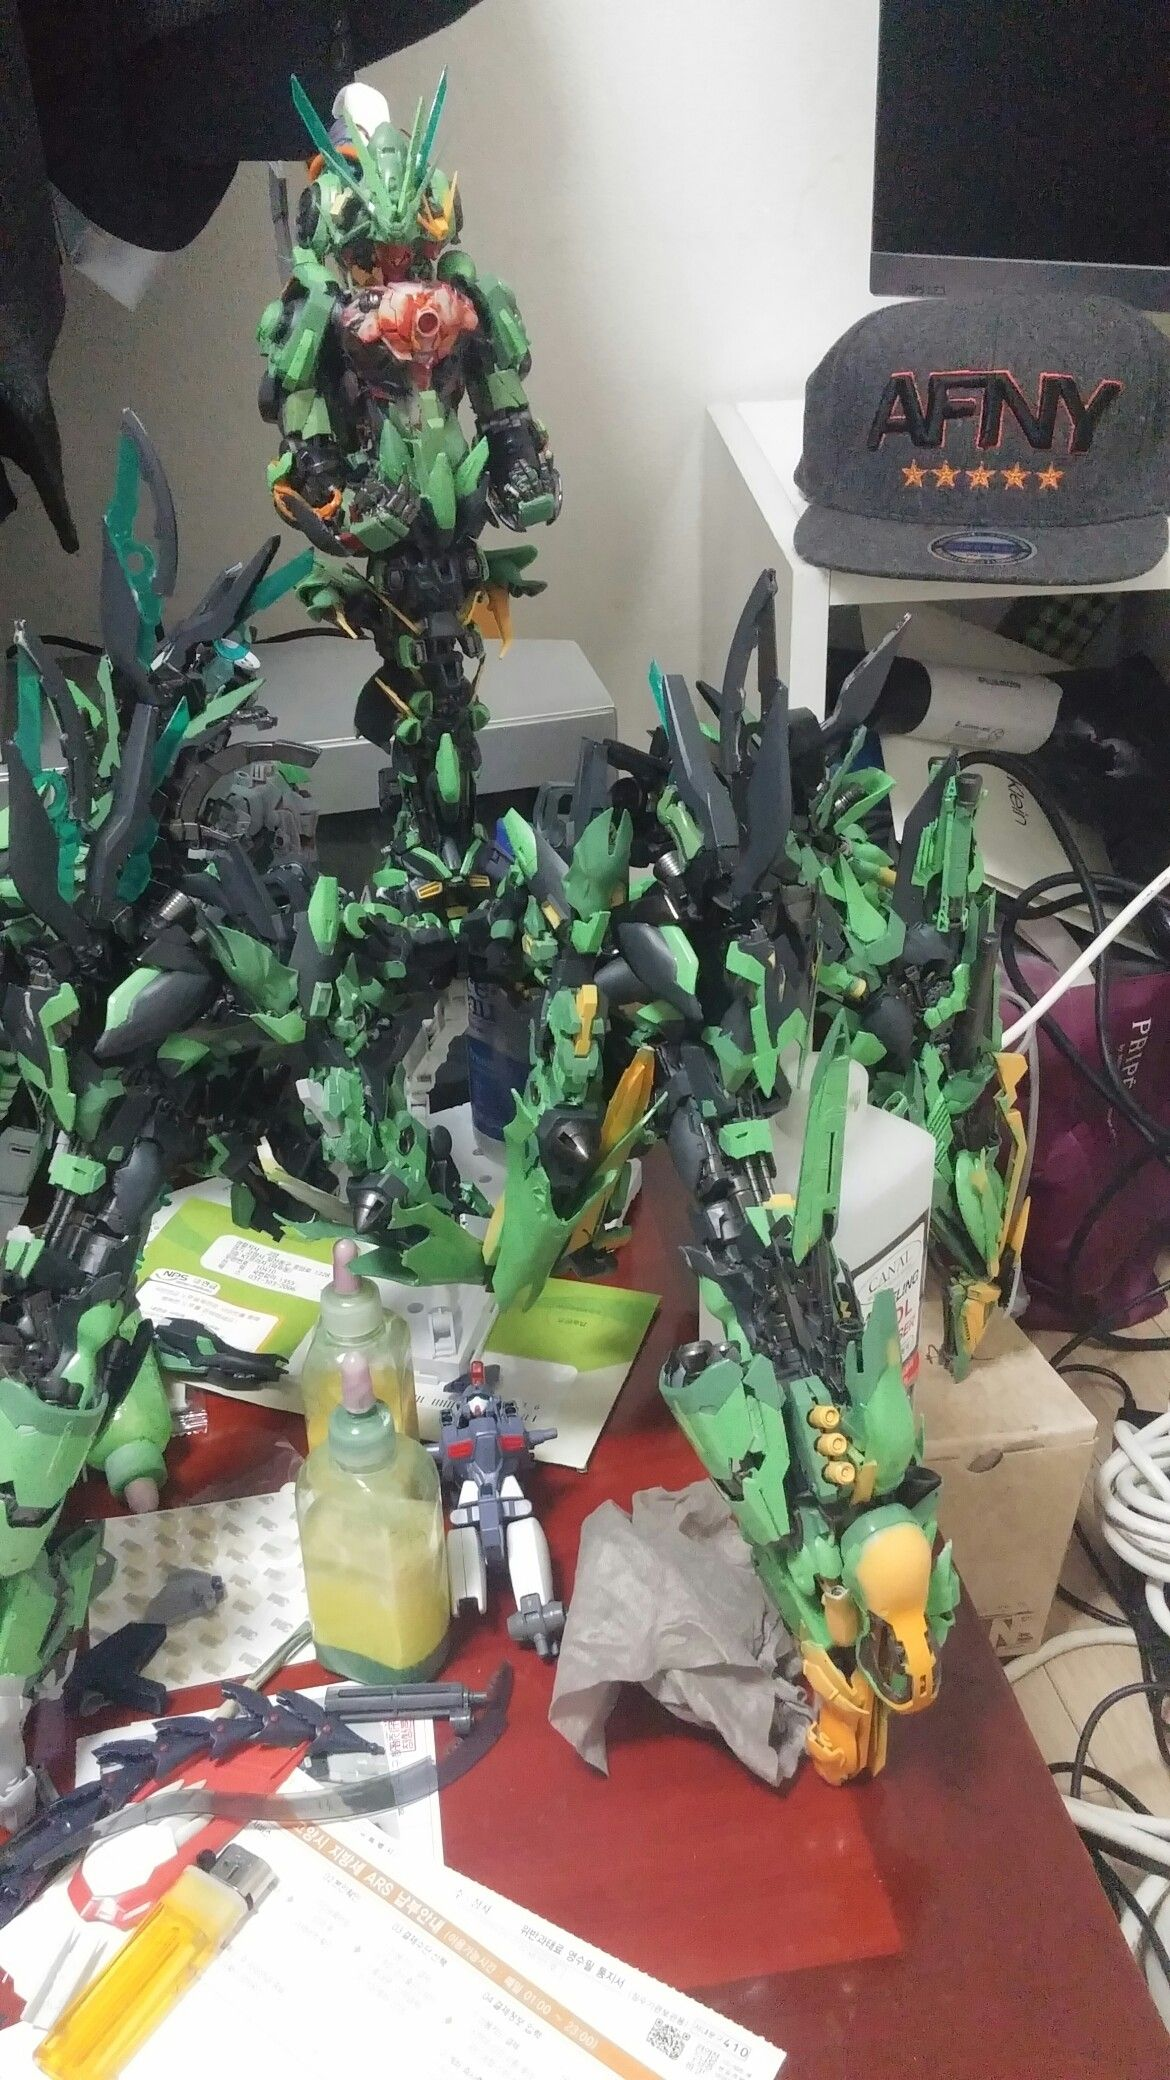 Pin by Carl Lee on Toys and Home Decor Gundam model